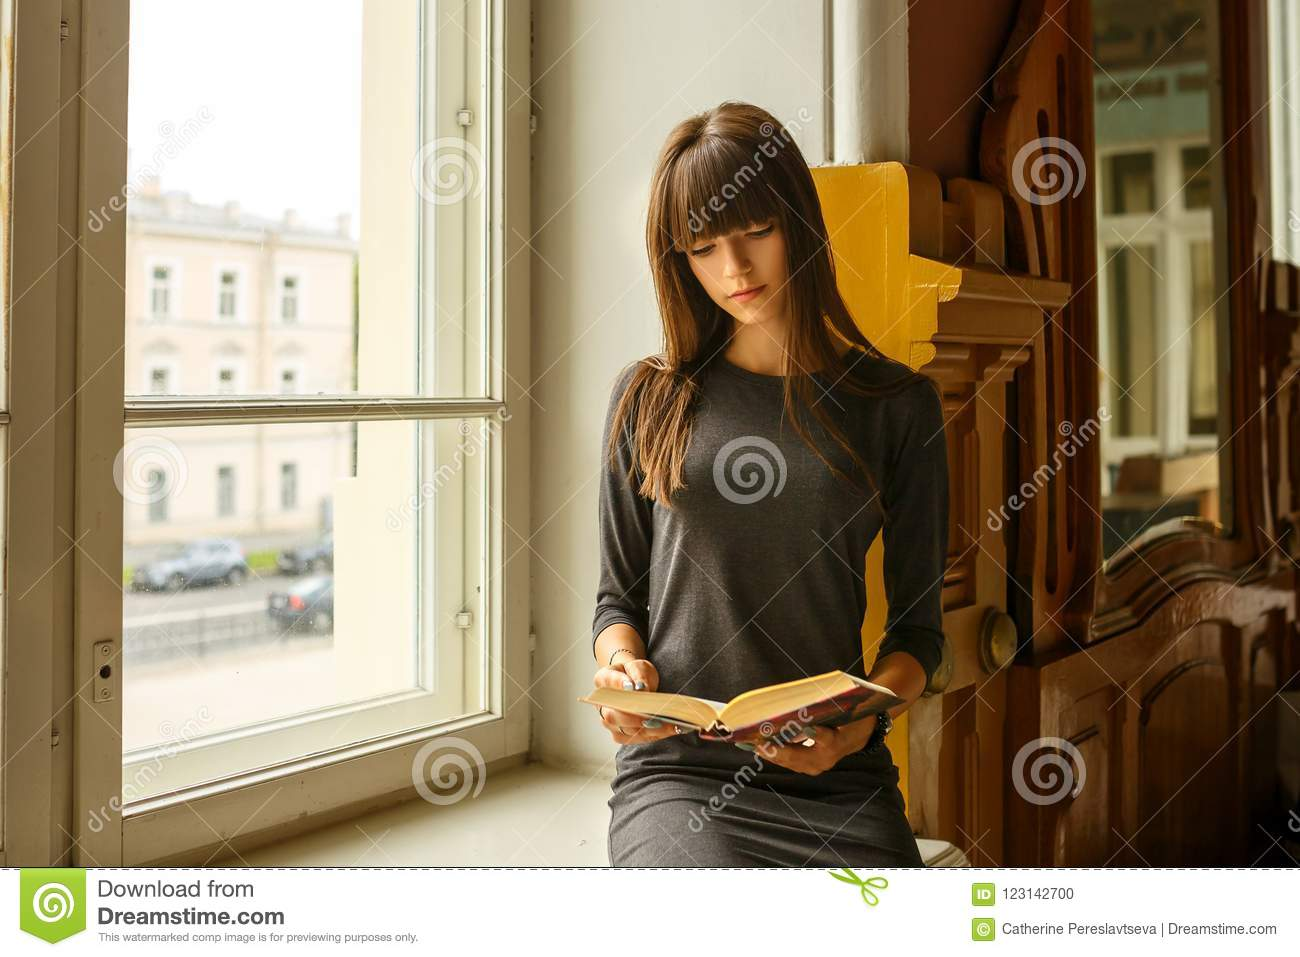 Girl sitting near the window reading a book